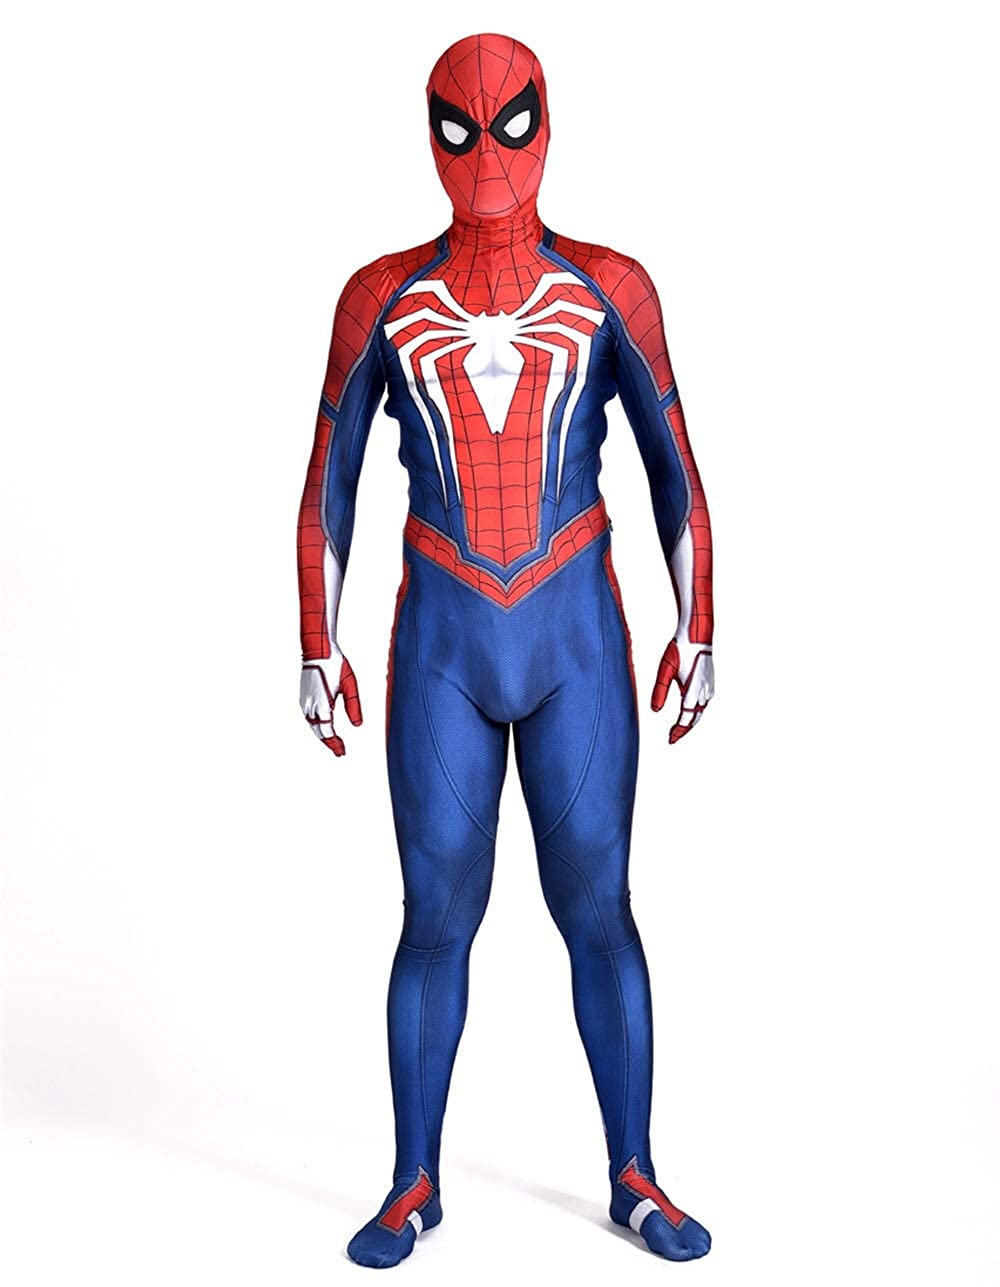 Spider Superhero Ps4 Game 2018 Halloween Cosplay Costumes Adult 3D Style New Edition